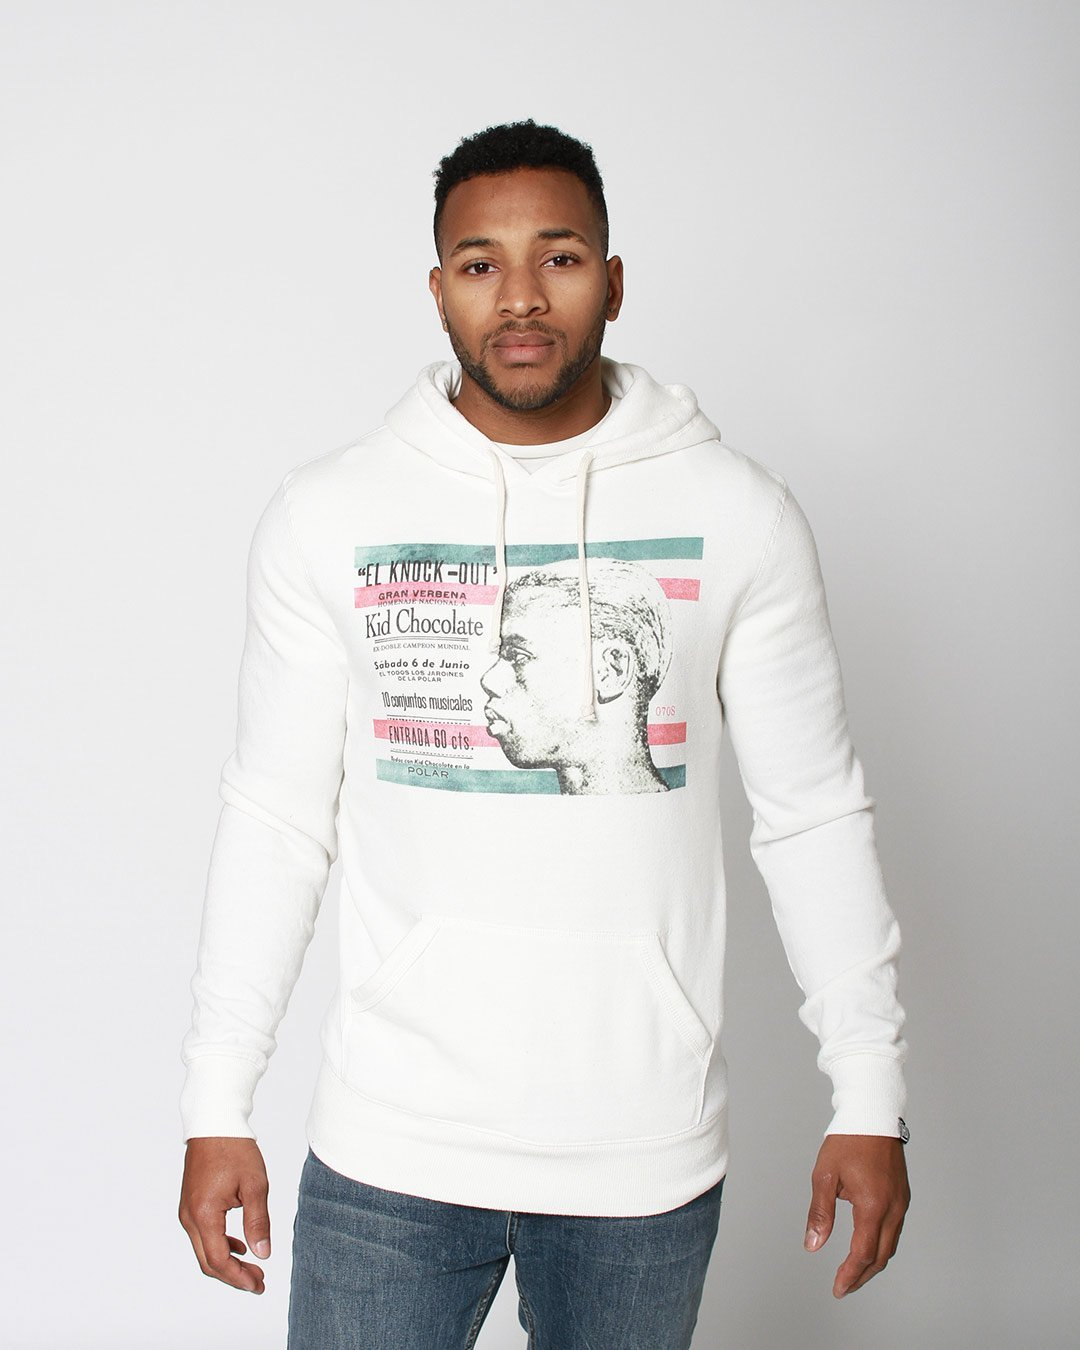 Kid Chocolate 'El Knock-Out' Pullover Hoody - Roots of Inc dba Roots of Fight